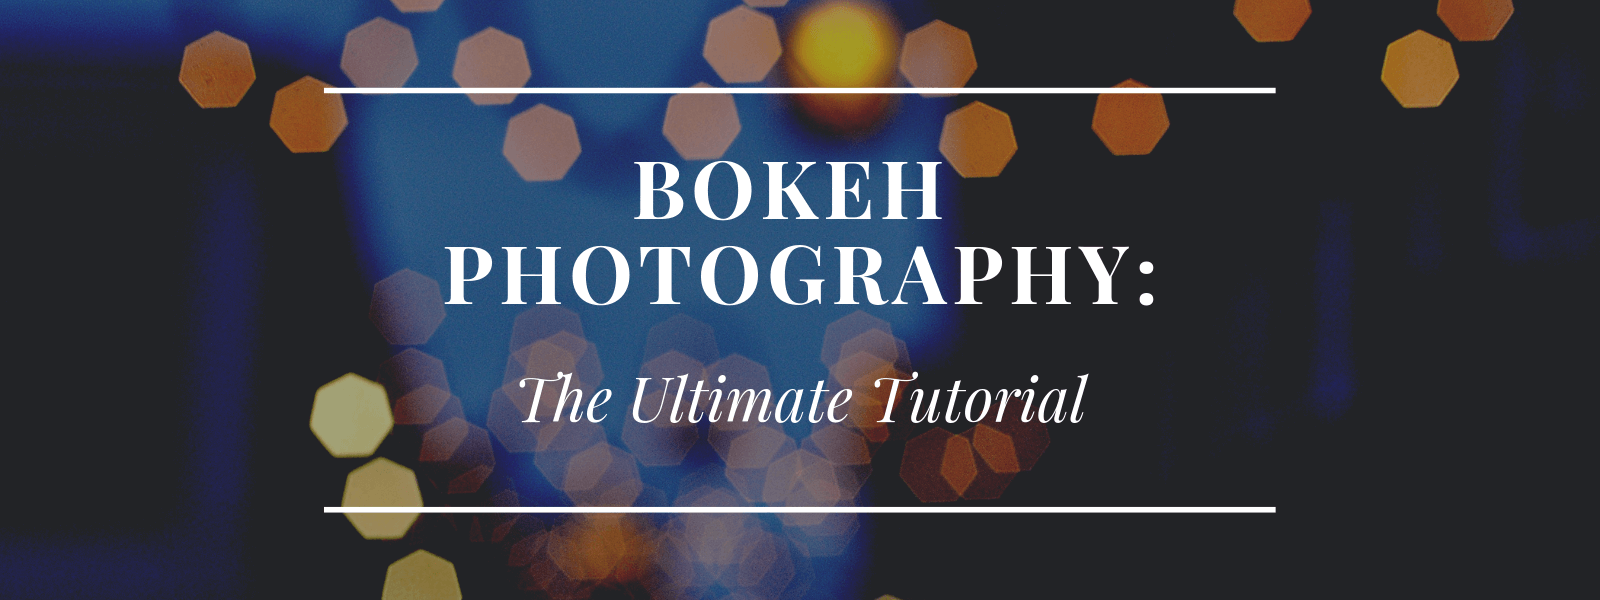 Bokeh Photography: Everything You Ever Wanted to Know